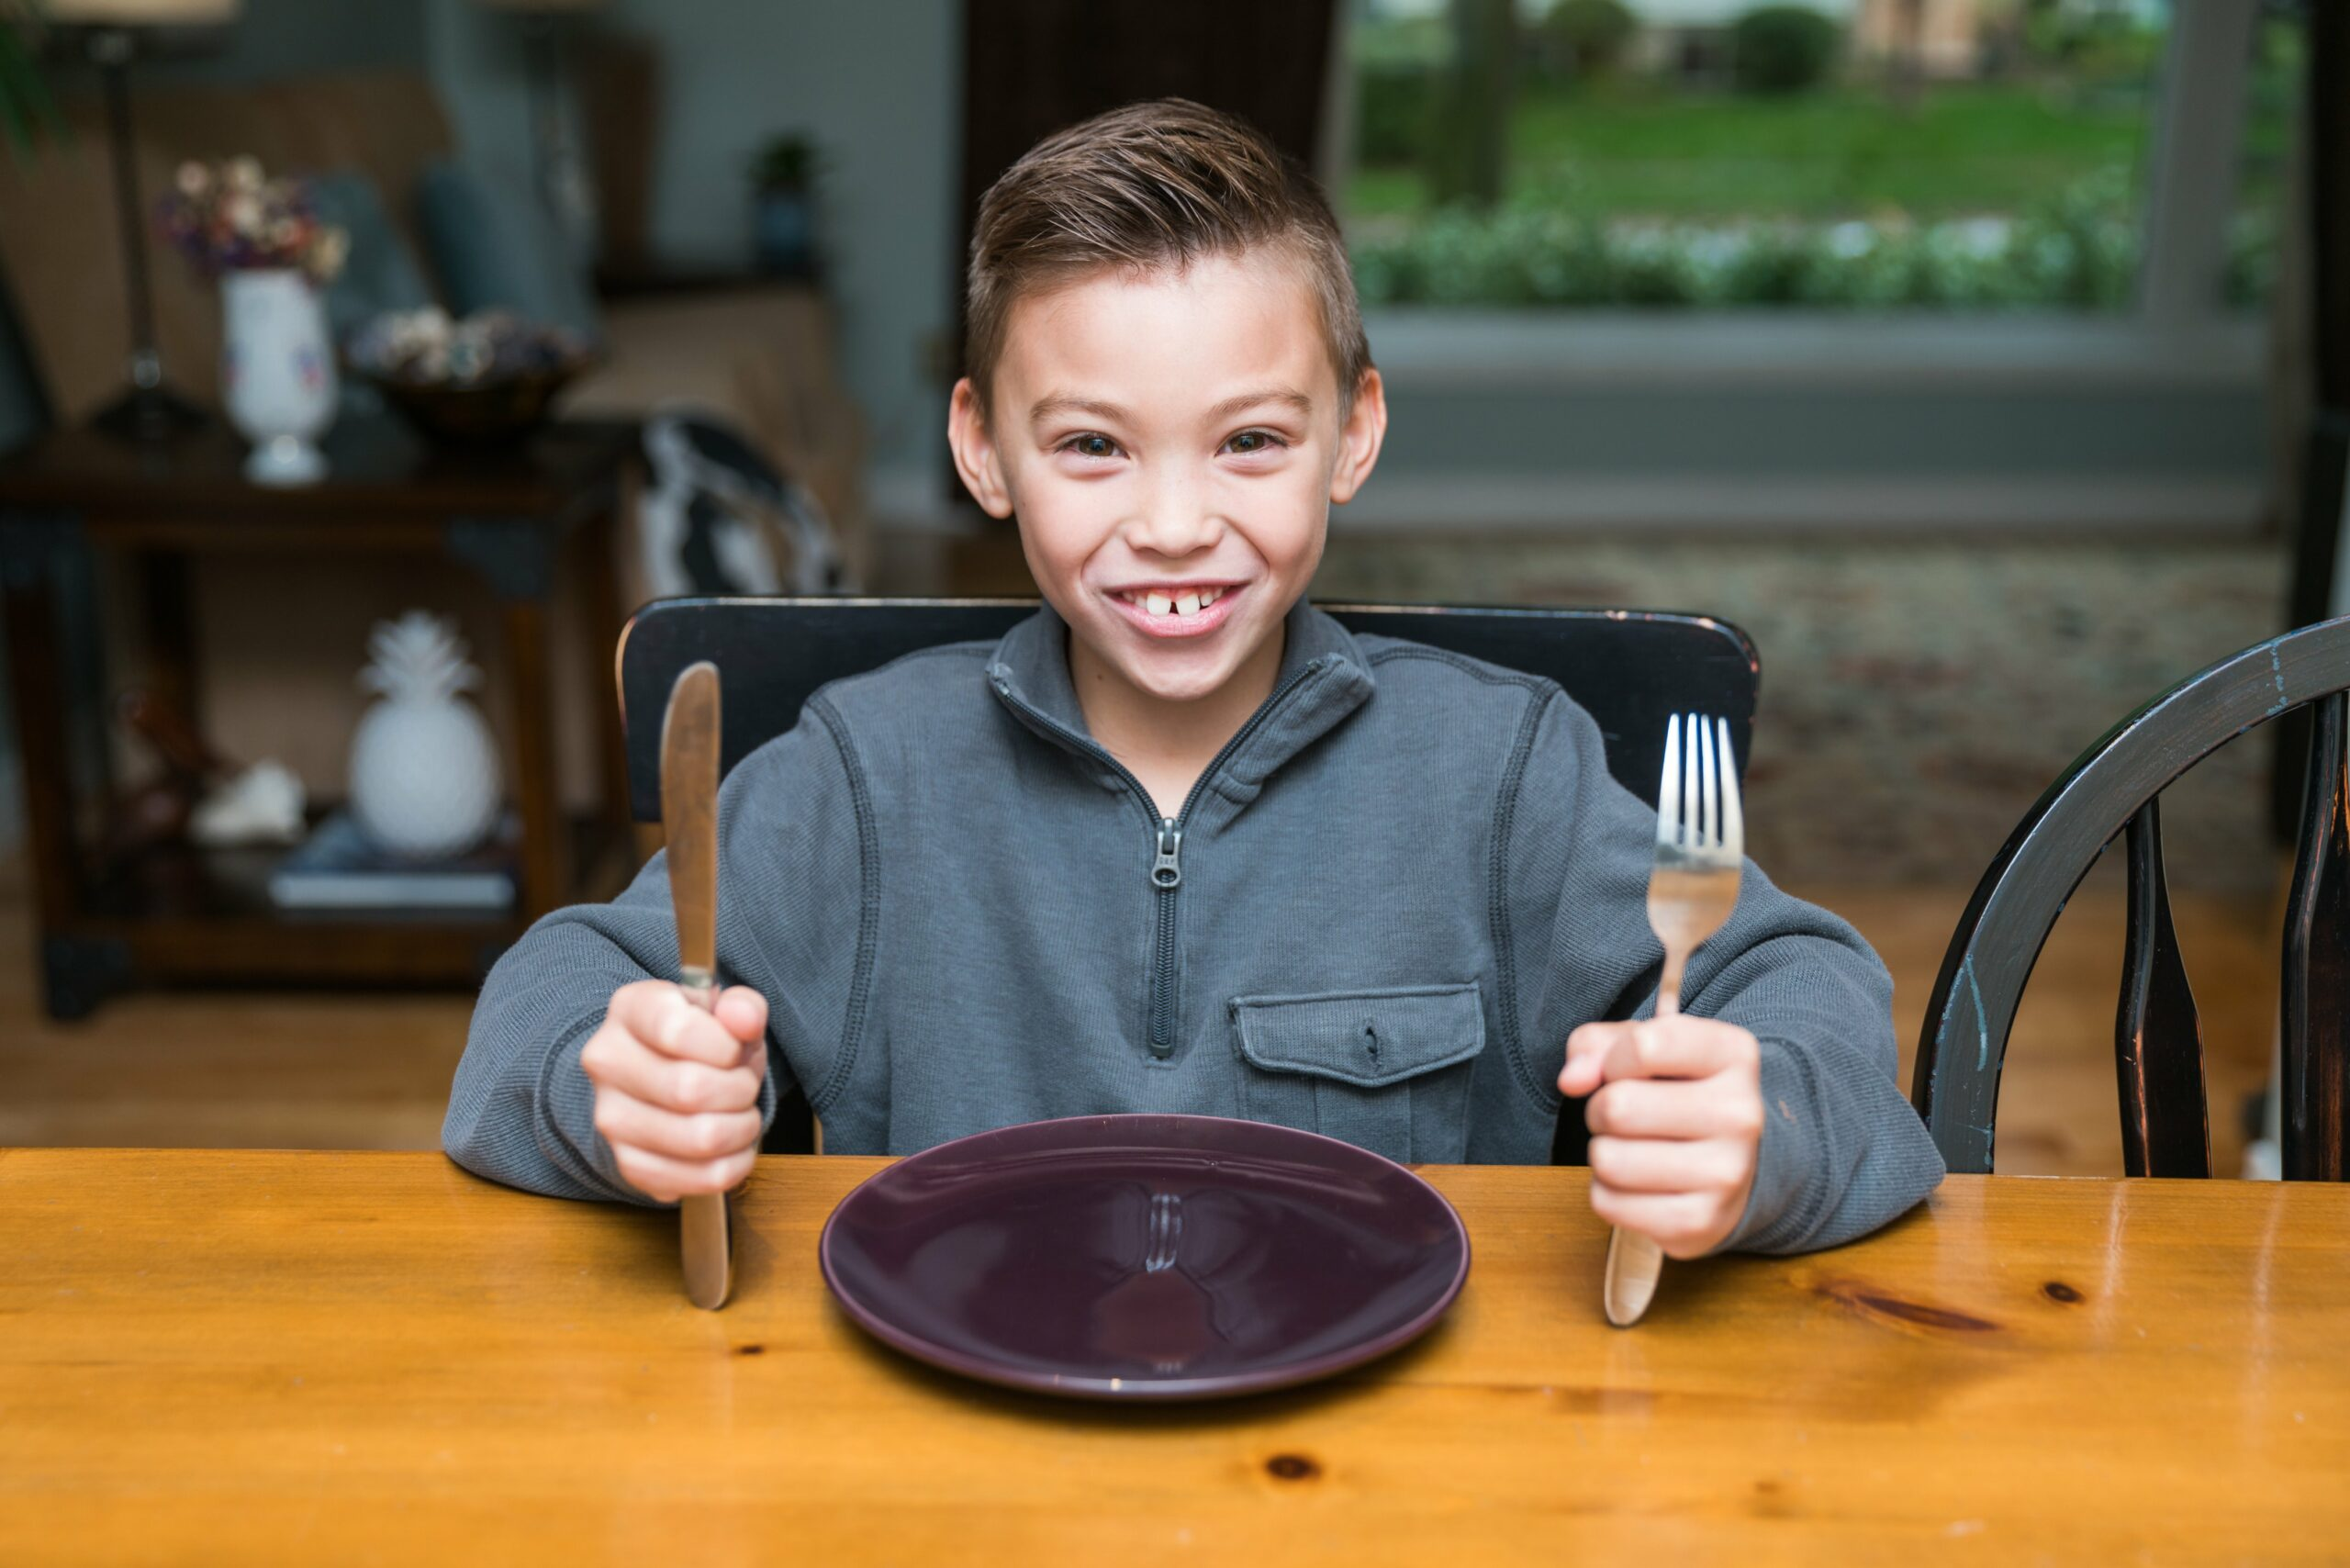 picture of kid holding cutlery in front of plate